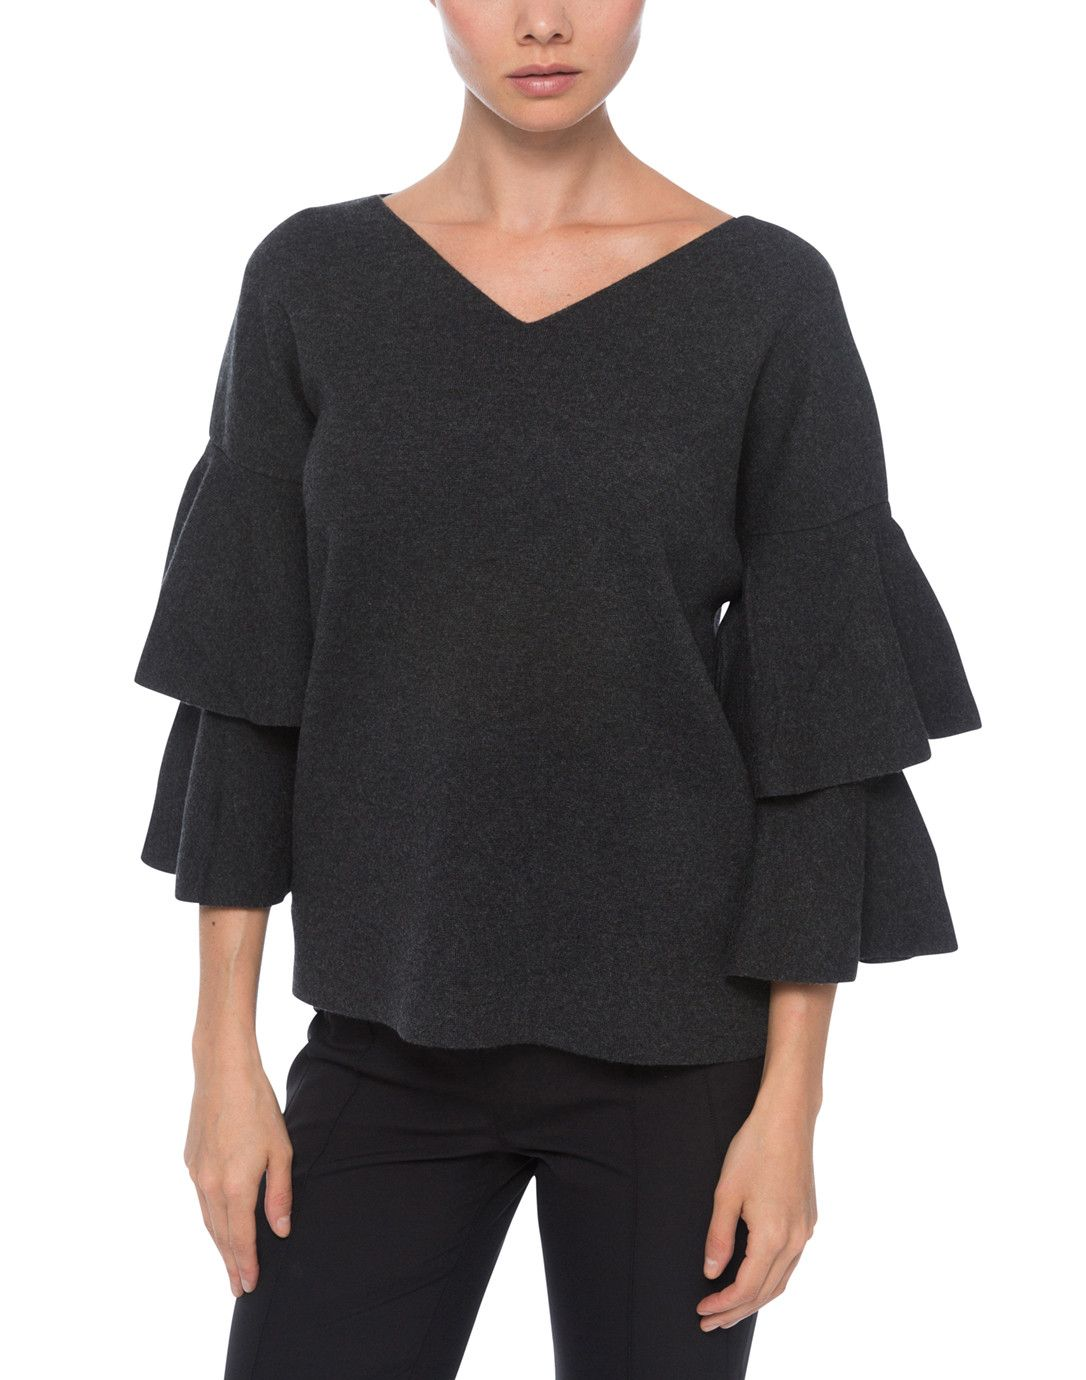 Charcoal wool vneck sweater with tiered sleeves ruffle sleeve